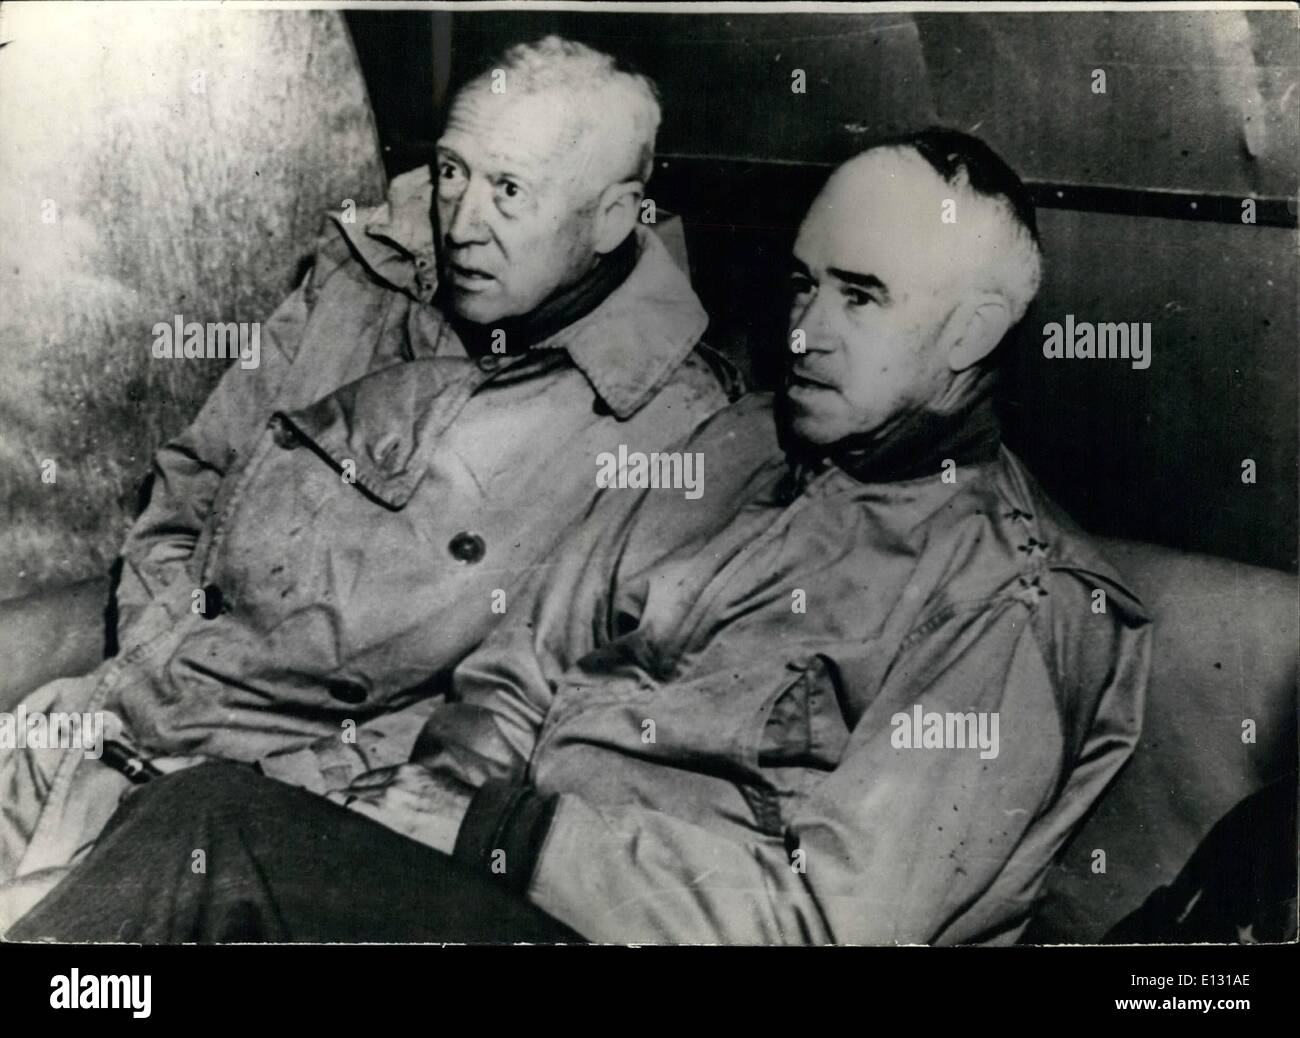 Feb. 26, 2012 - Their armies keep them flying passed by Censor. Lt. Generals George . Patton (left) and Omar L. Bhadley, are shown in a C - 47 transport plane in which they visited the different frighting areas in Noryhern France. The Ya forces are now spread so widely tha the top field commanders find it necessary to use planes to inspect the various Fronts, Stretoning Brittany to the Duch, German, Swiss and Italian borders. - Stock Image